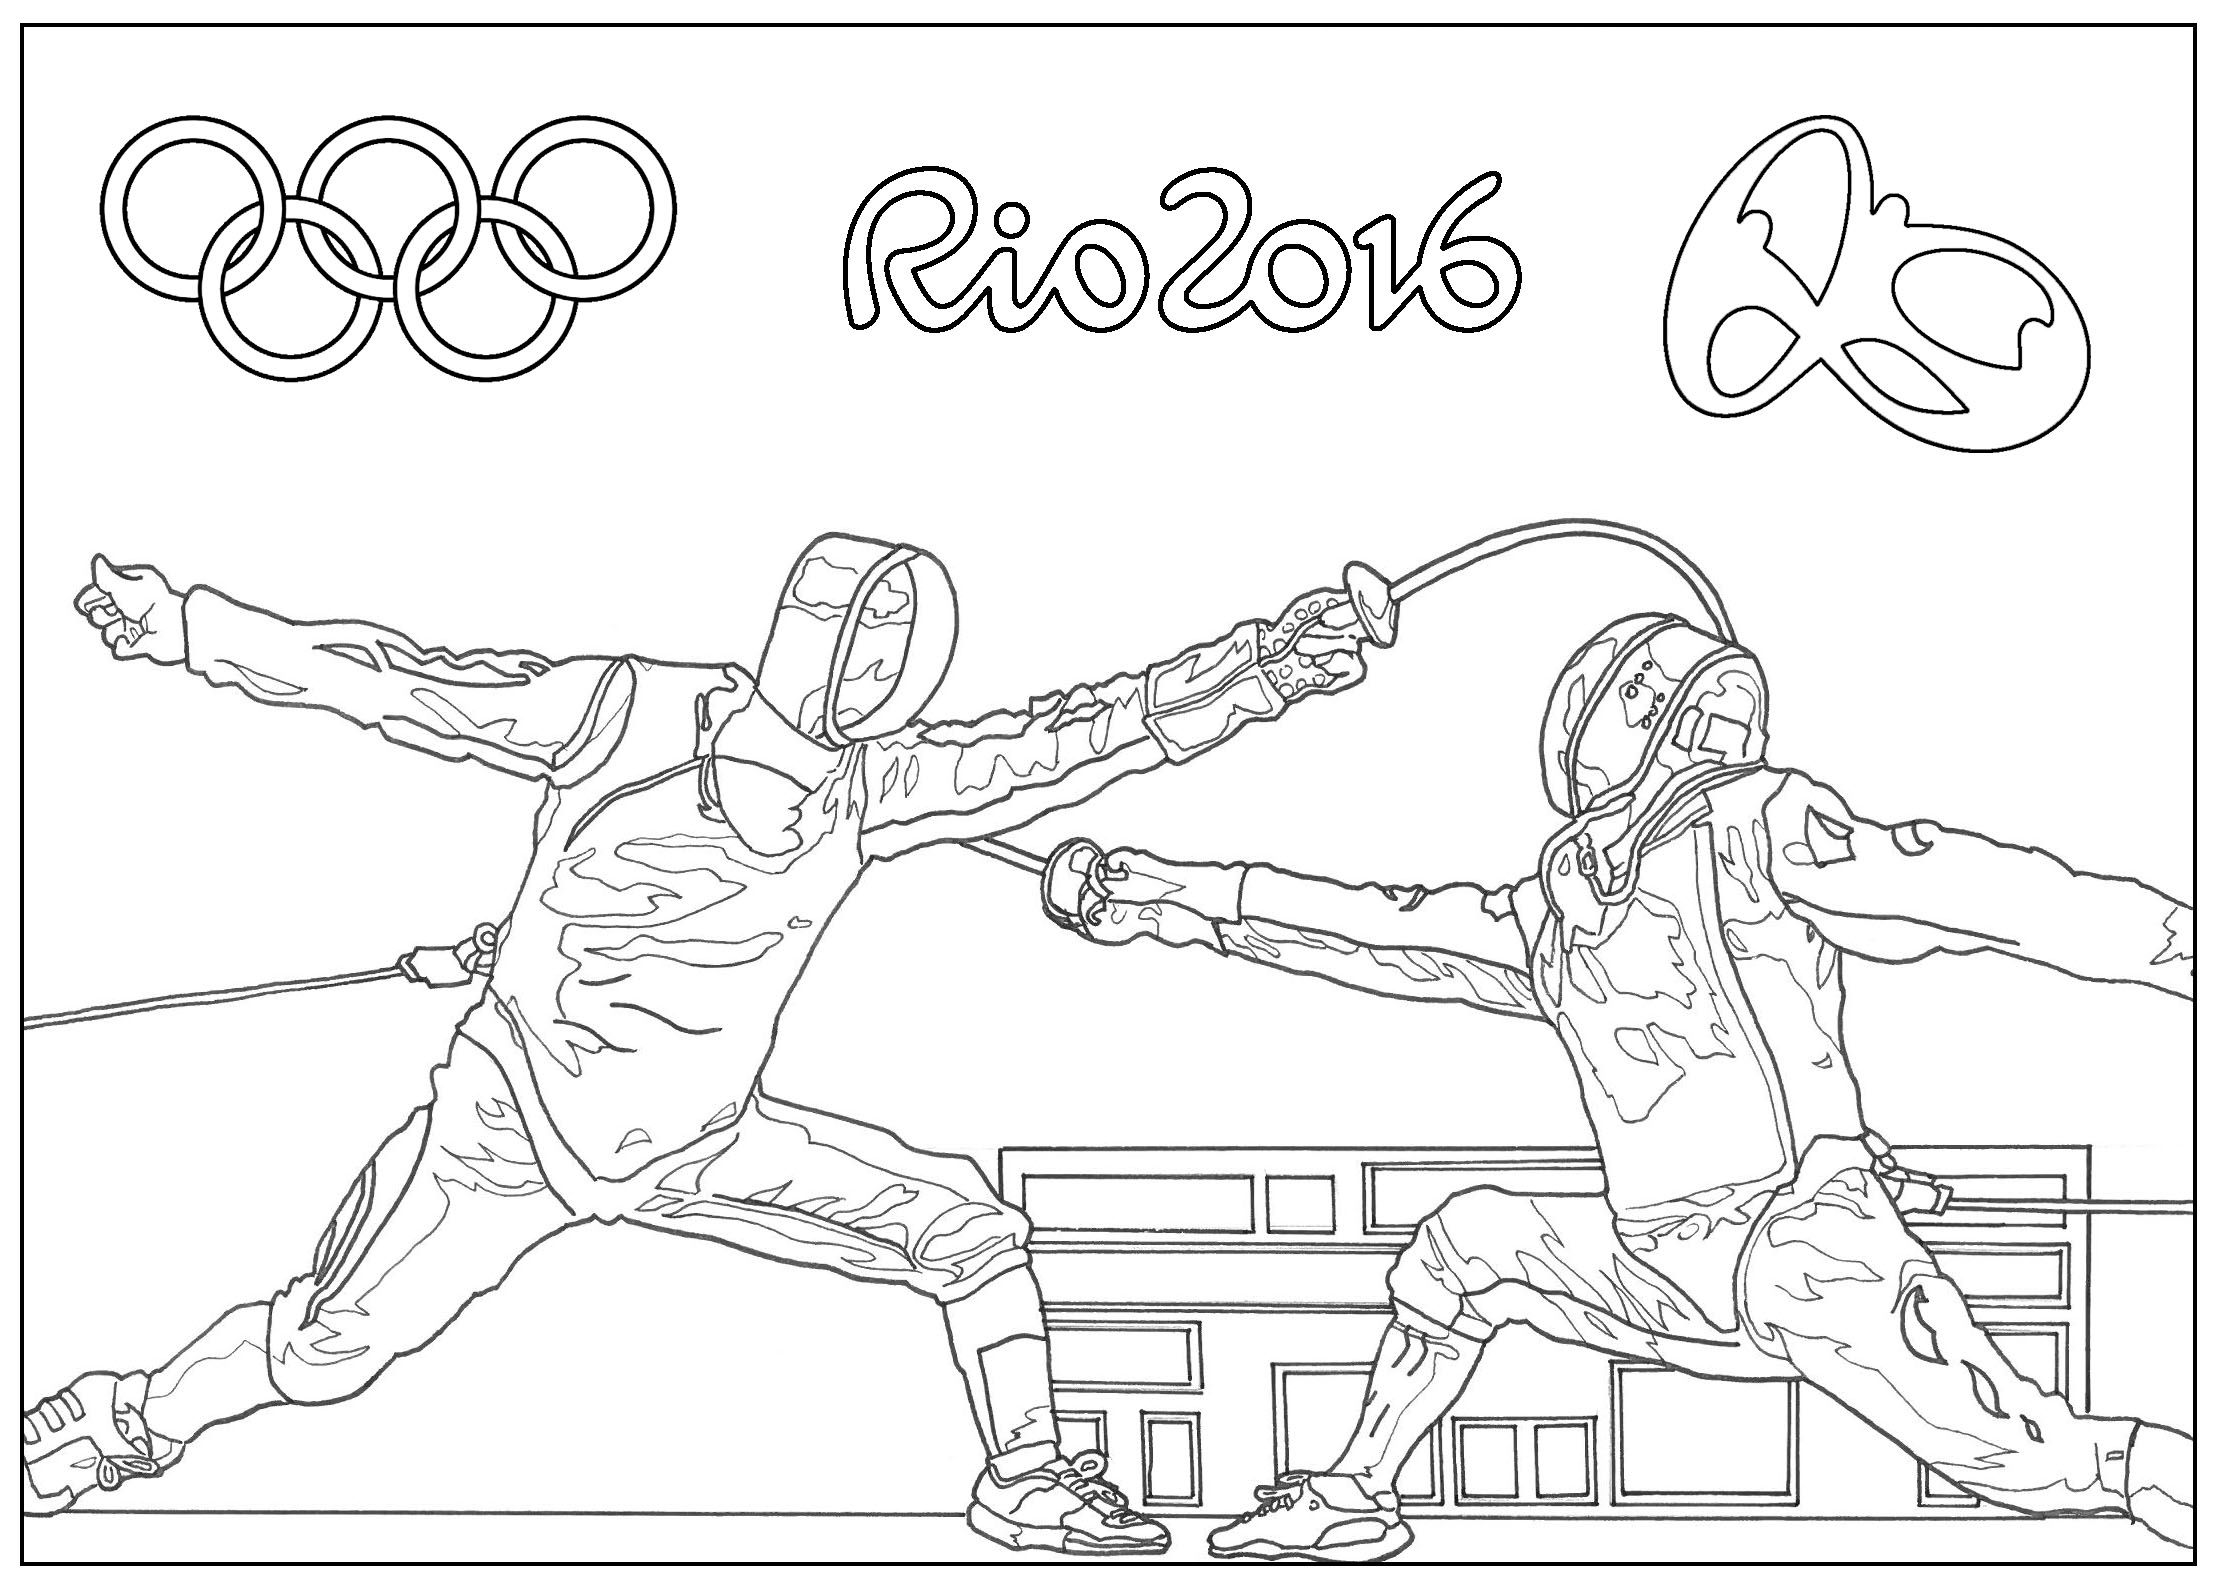 Free Coloring Page Coloring Adult Rio 2016 Olympic Games Fencing